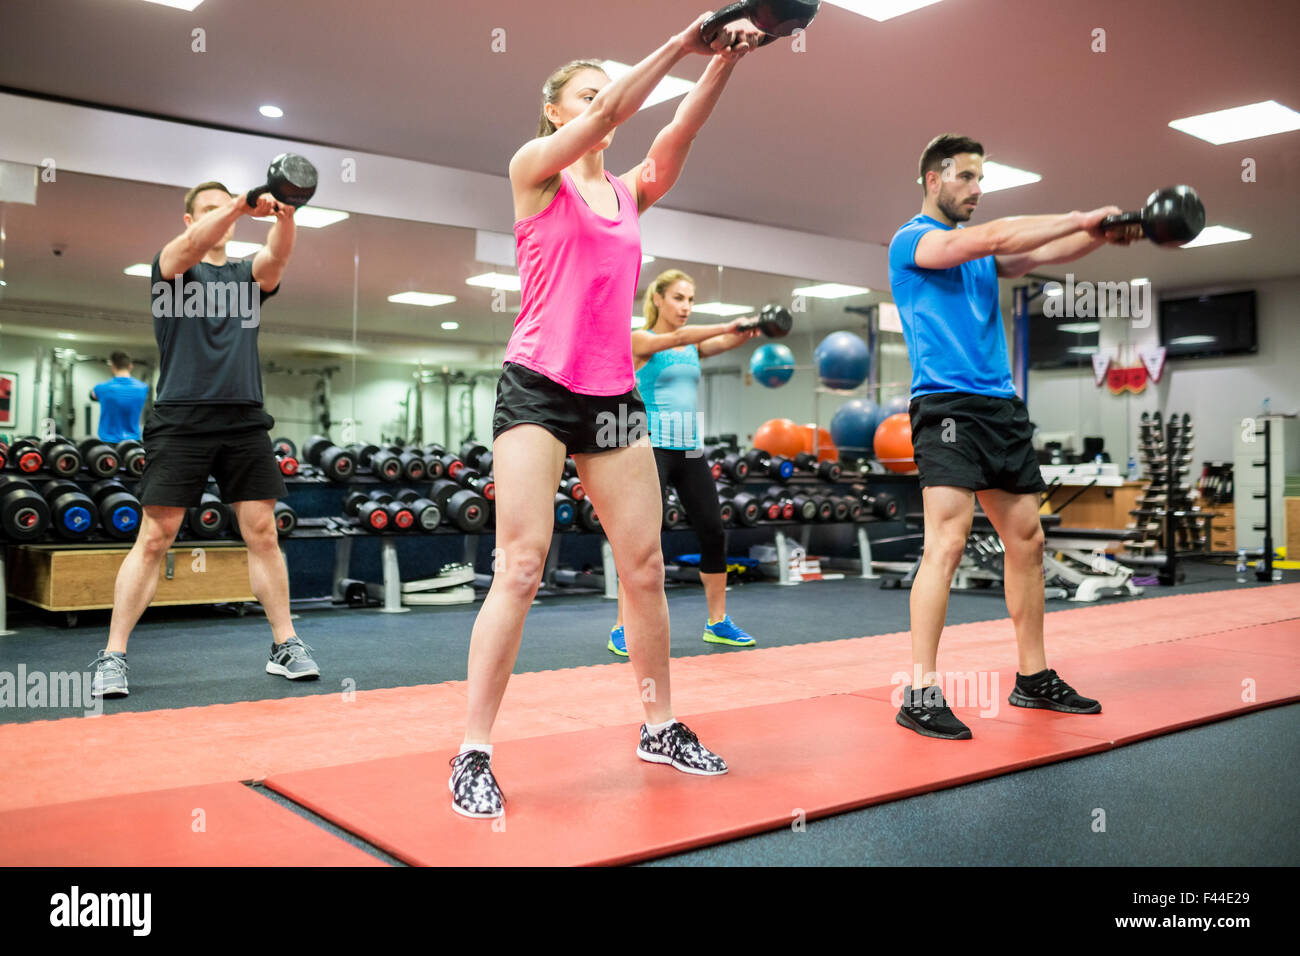 Fit people swinging kettlebell weights - Stock Image